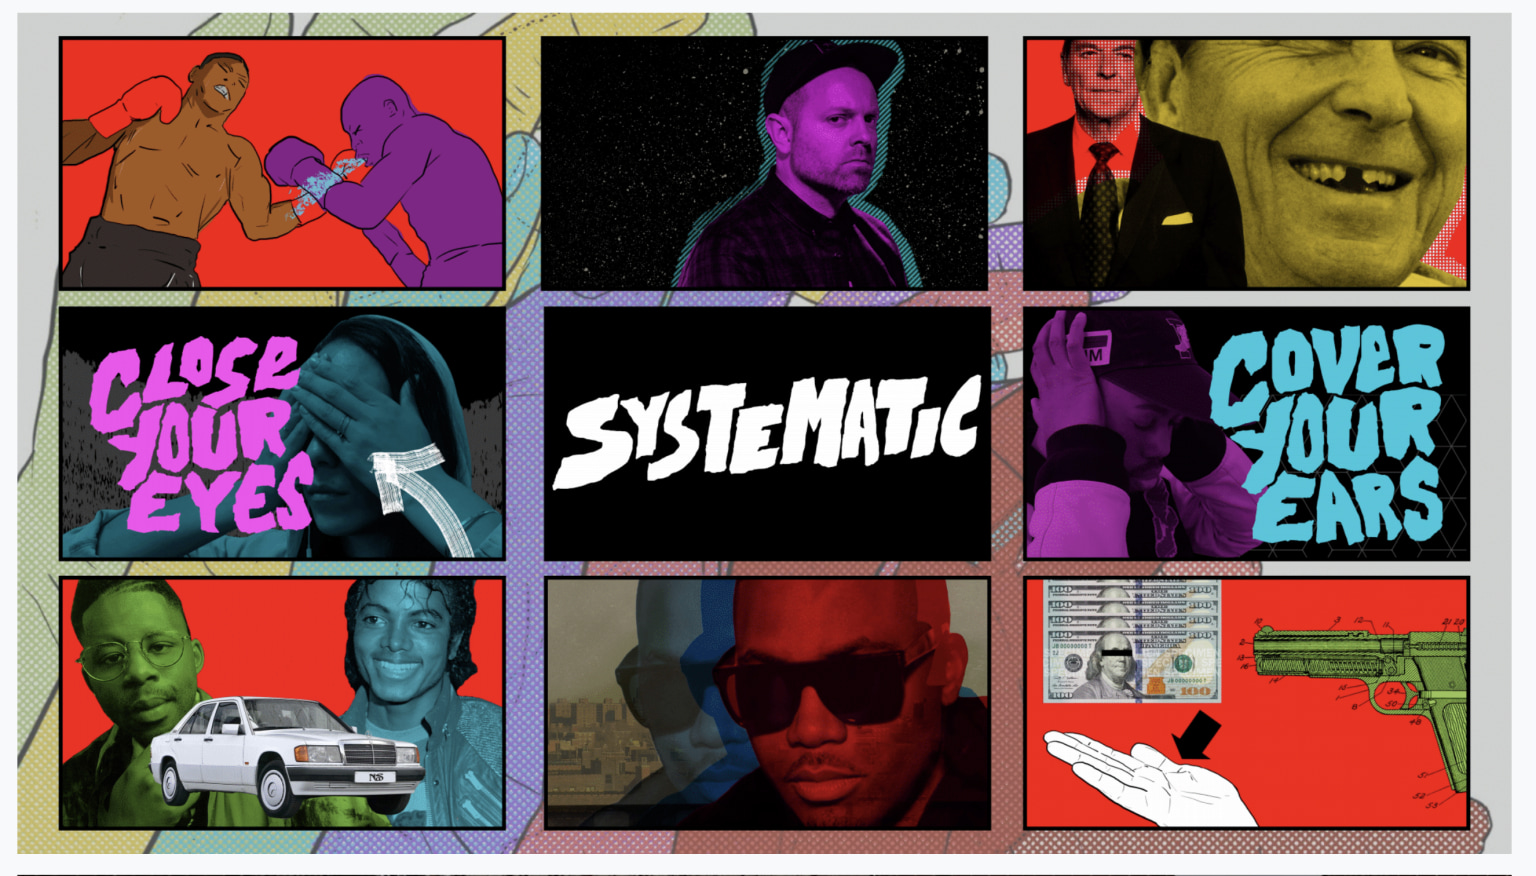 DJ Shadow feat Nas 'Systematic' (lyric video)